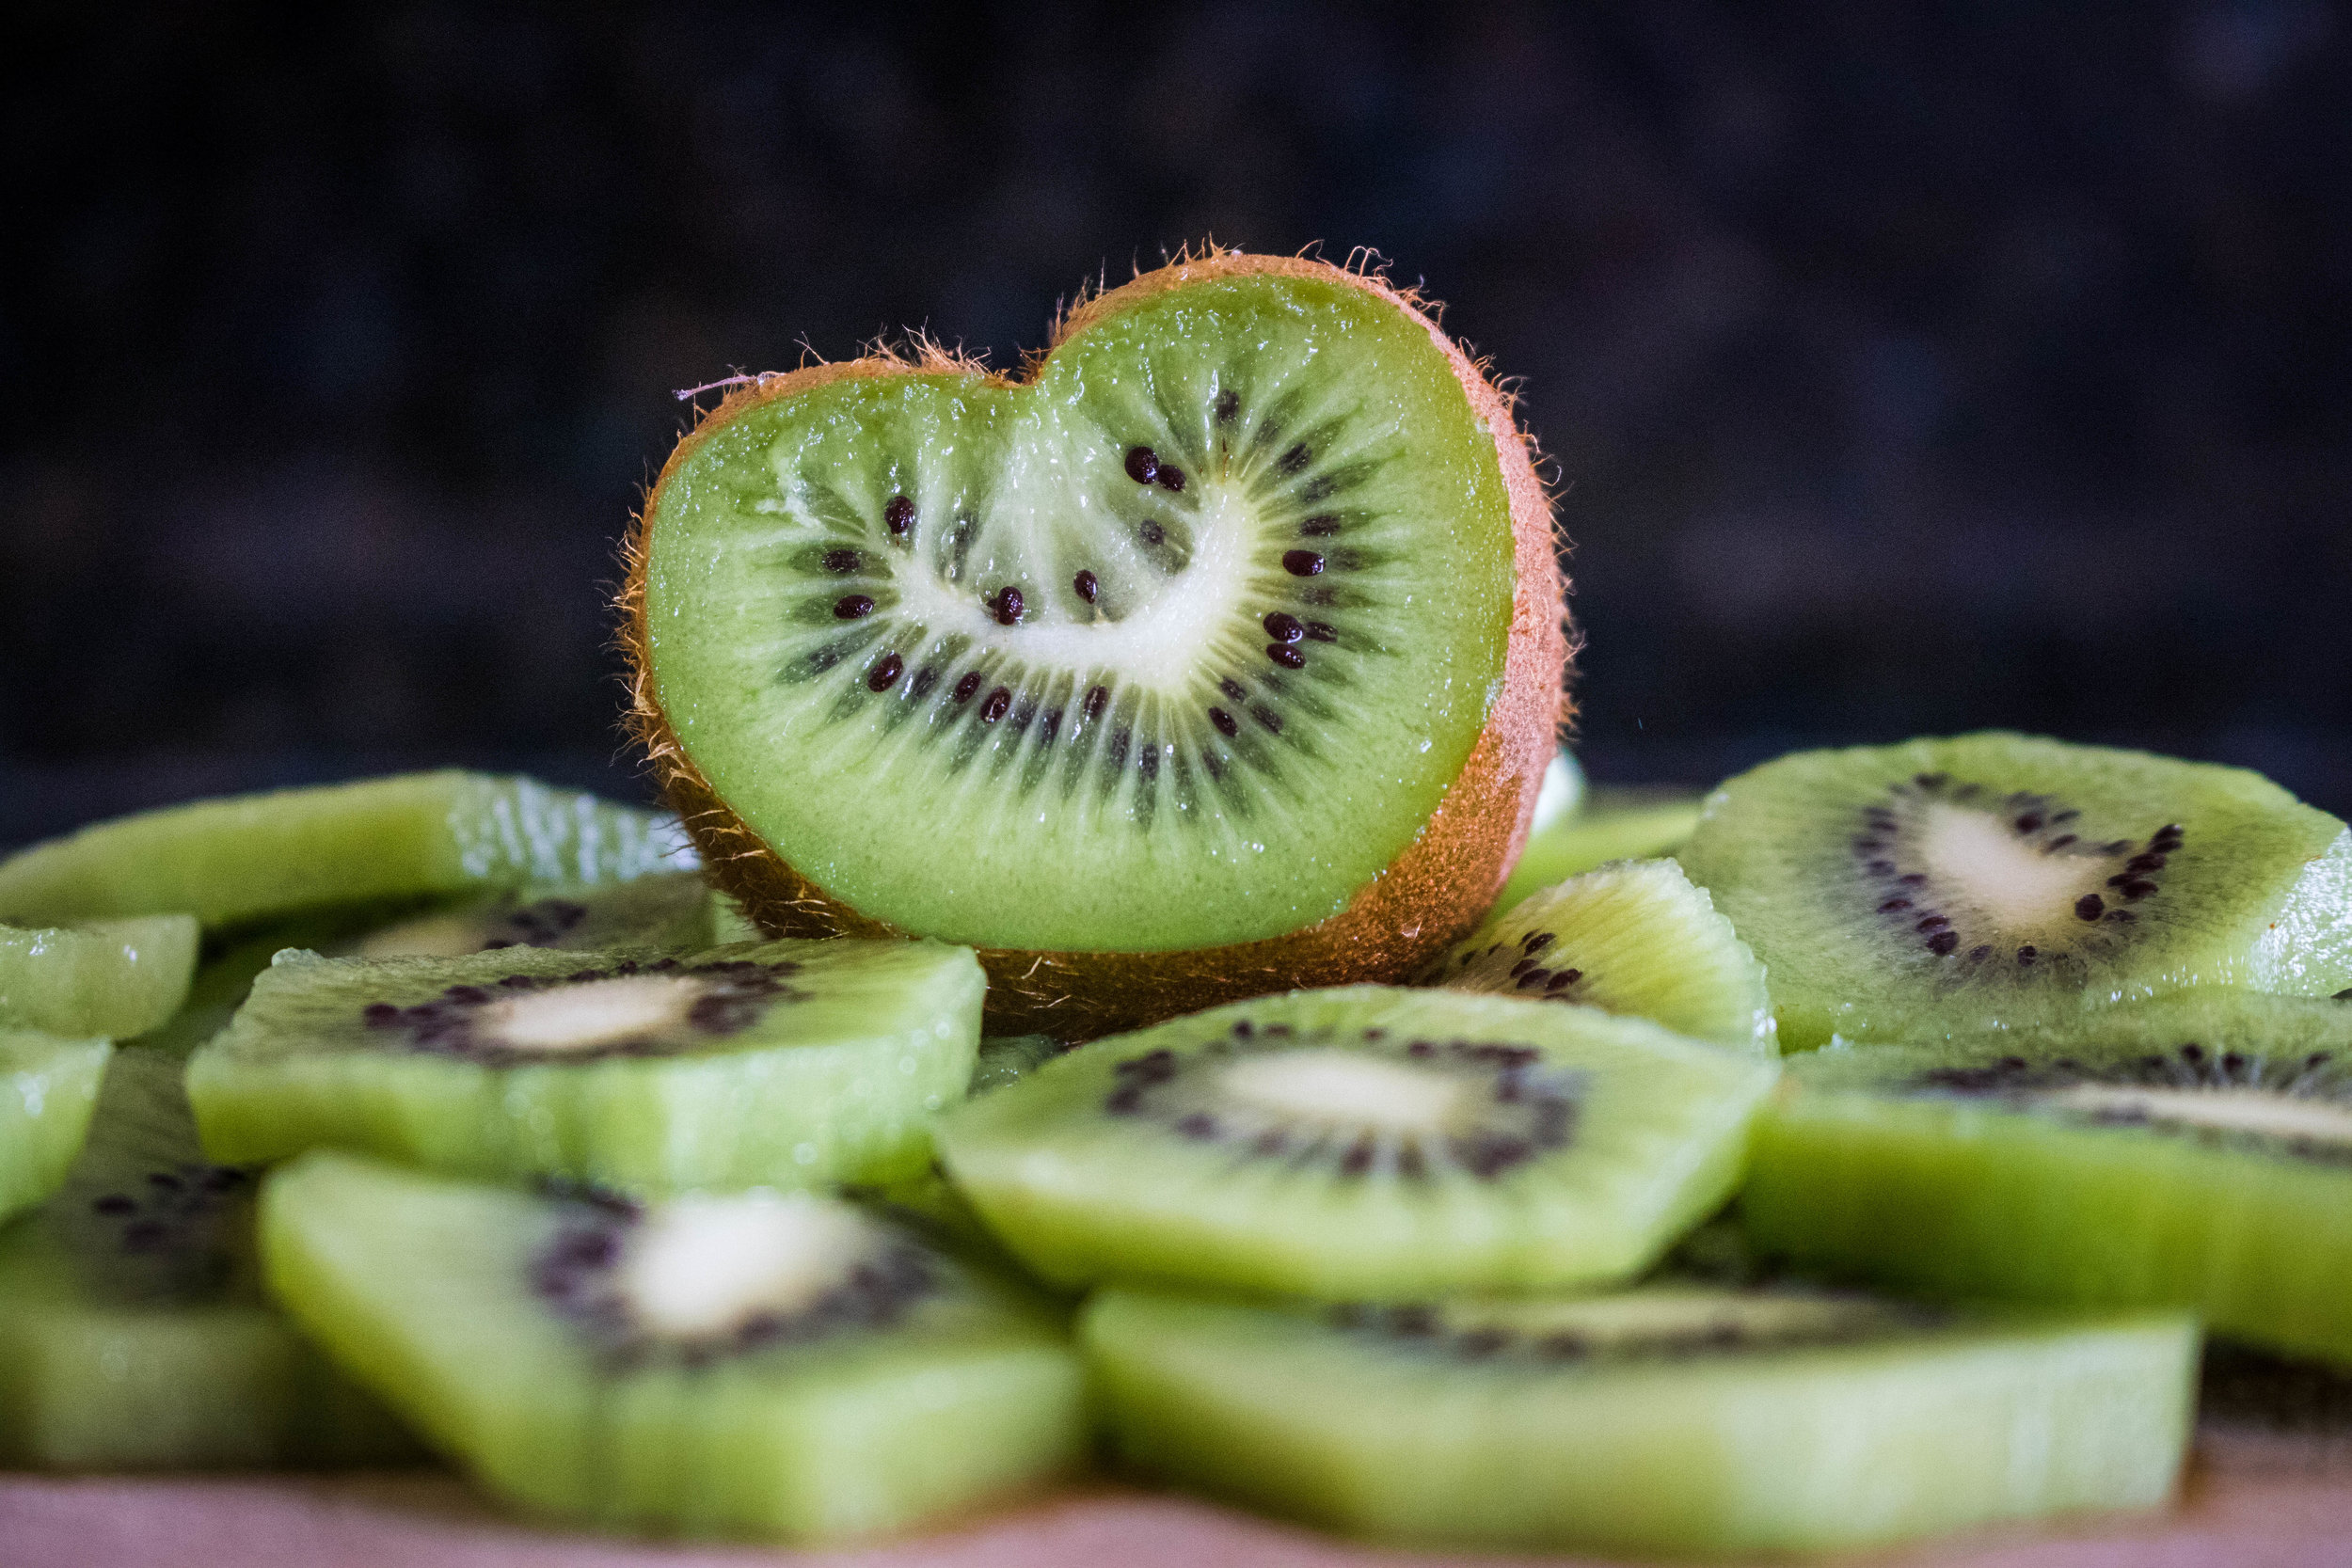 kiwis - 65 percent of kiwi samples had no detectable pesticide residues.Only six different pesticides were detected on any of the conventionally grown kiwis tested.